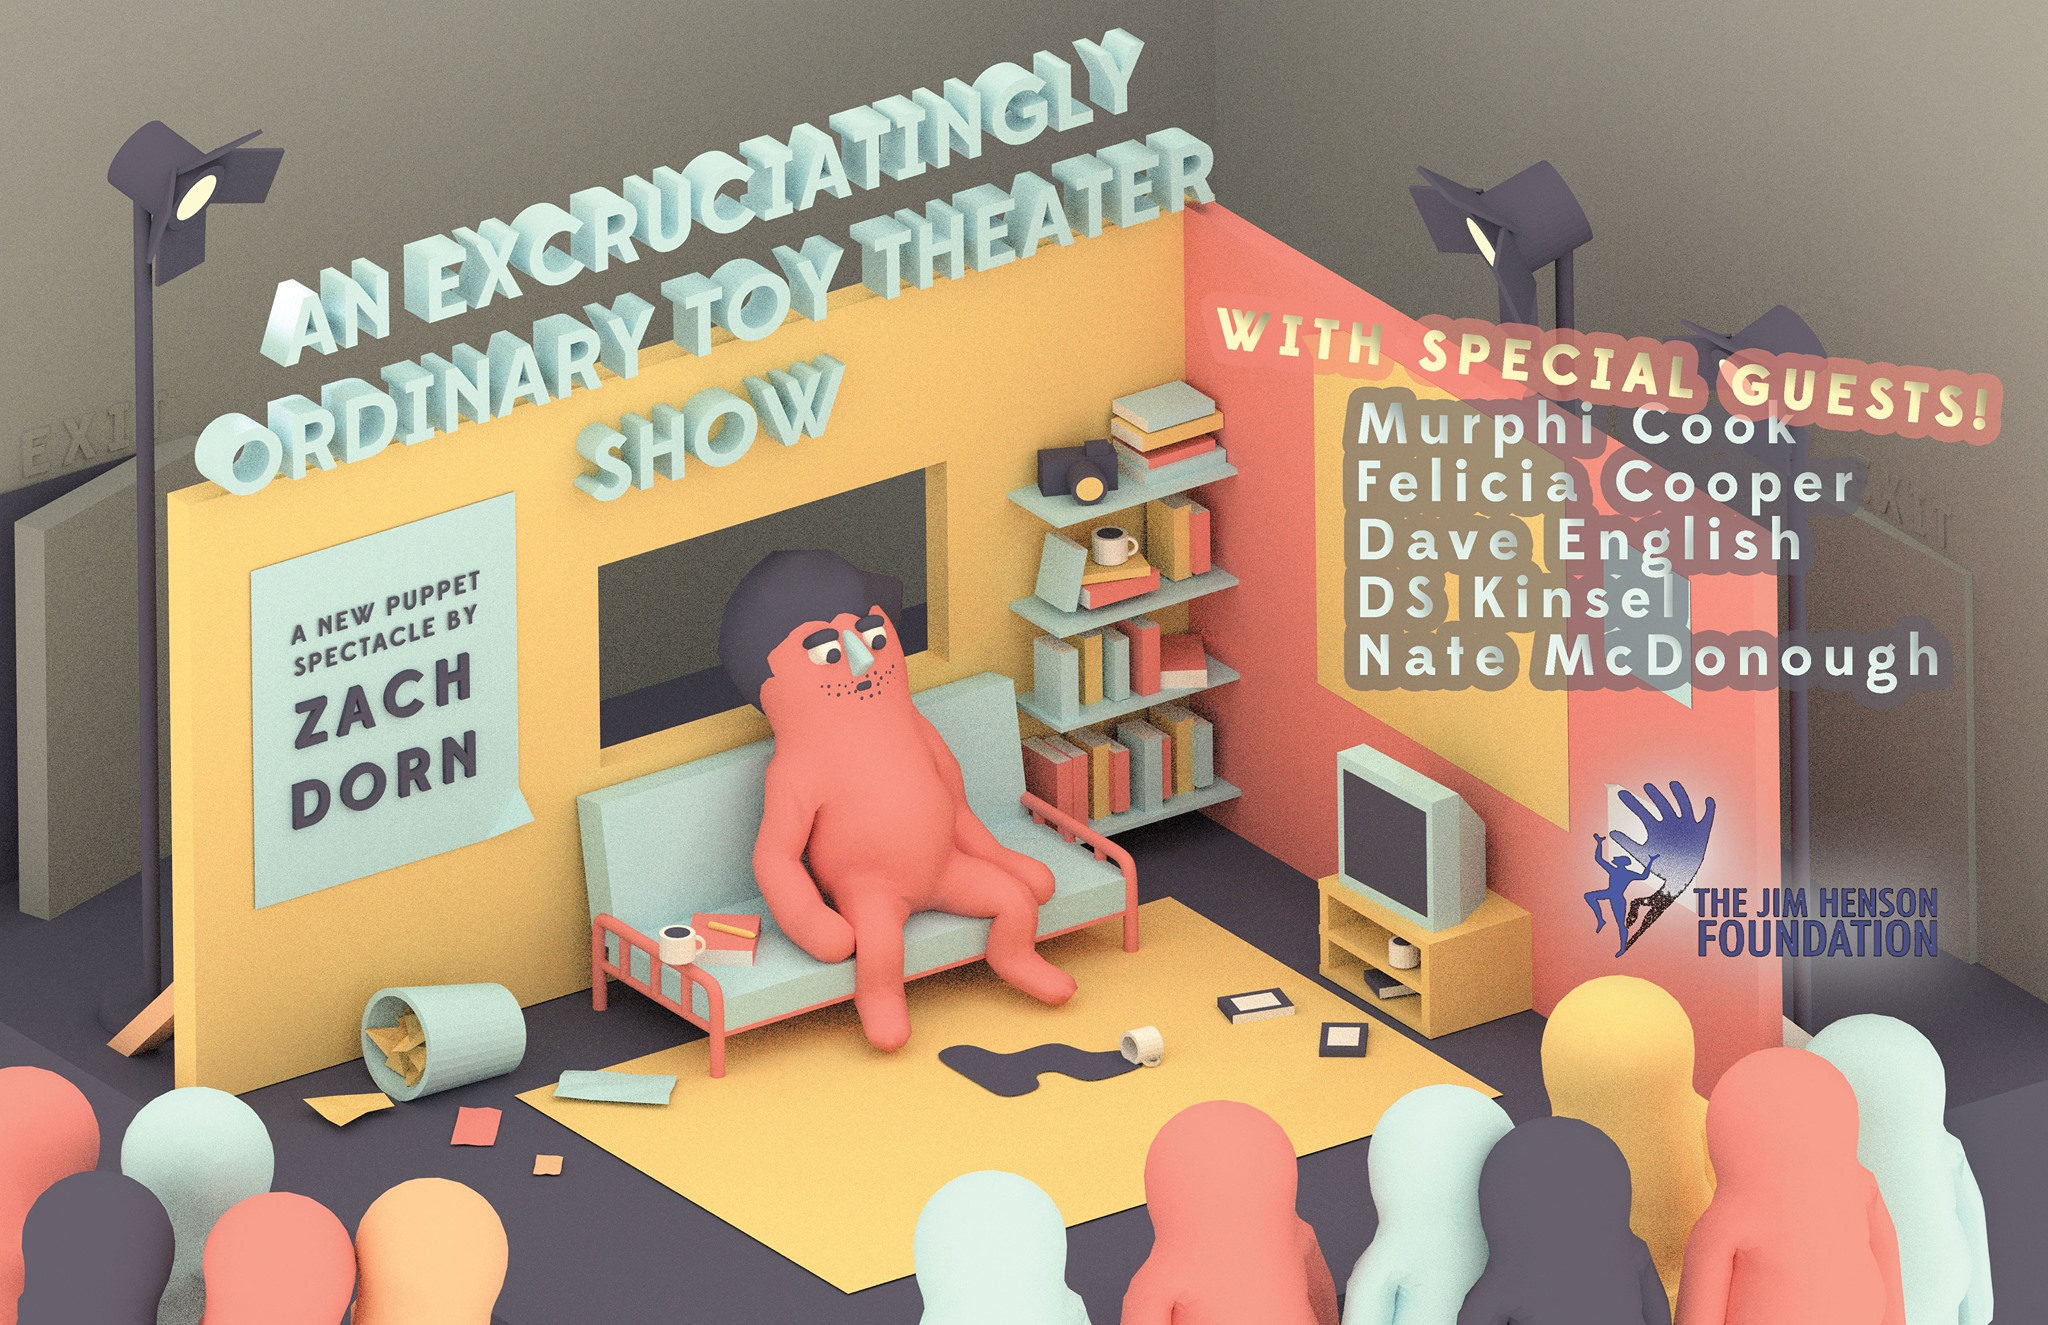 An Excruciatingly Ordinary Toy Theater Show - Dave performed as a special guest on Zach Dorn's ongoing toy theater series in January 2018 at The Glitterbox Theater.